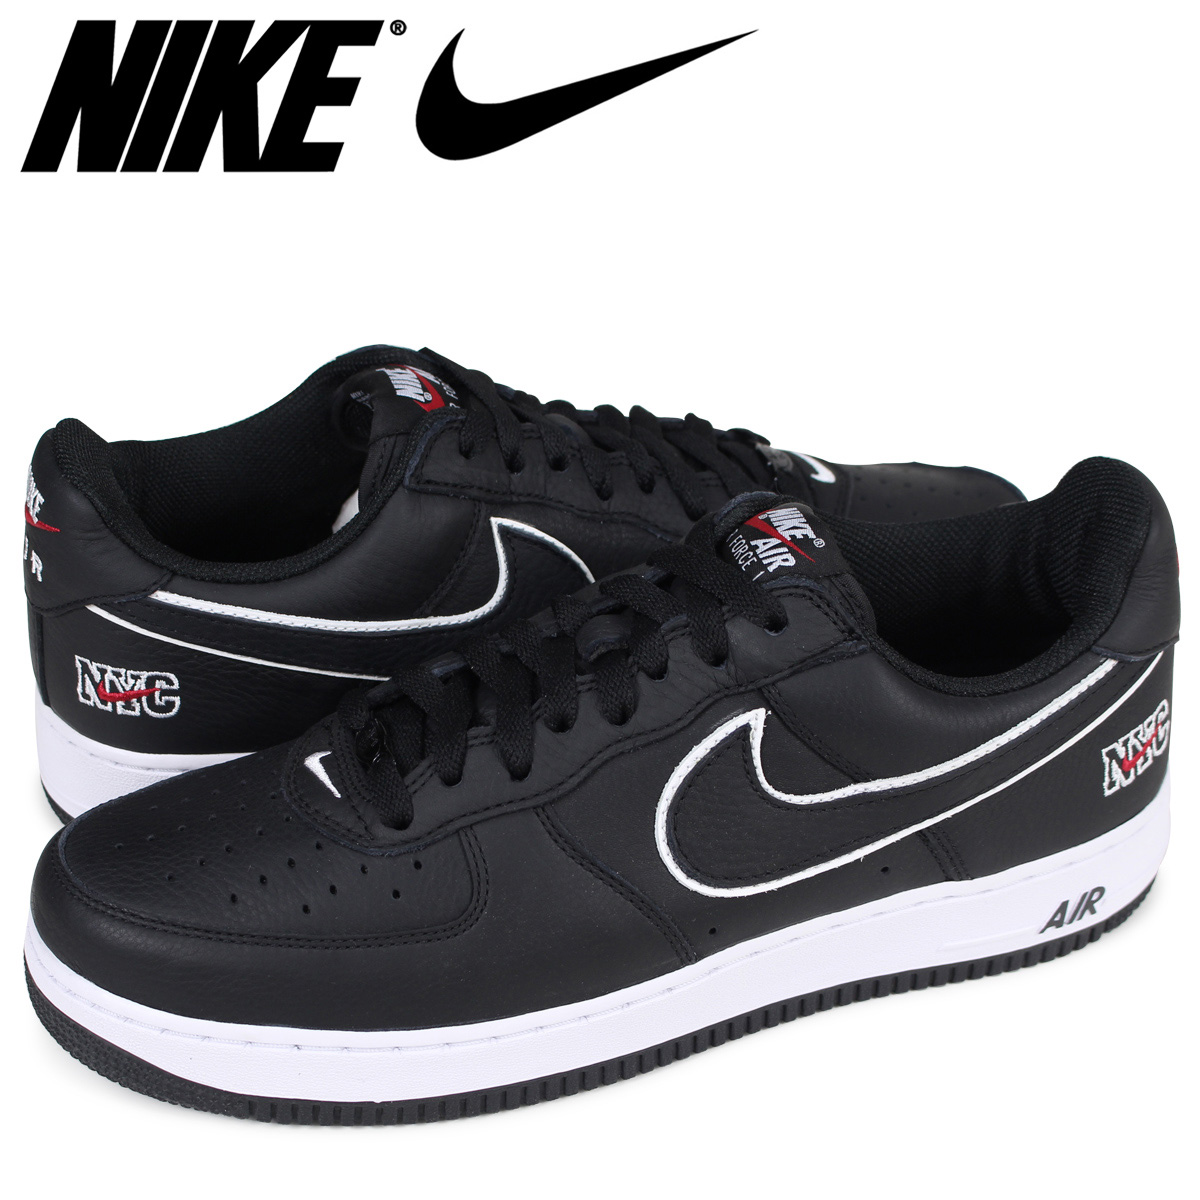 check out ad8ec 9ed8b  brand NIKE getting high popularity from sneakers freak . Masterpiece